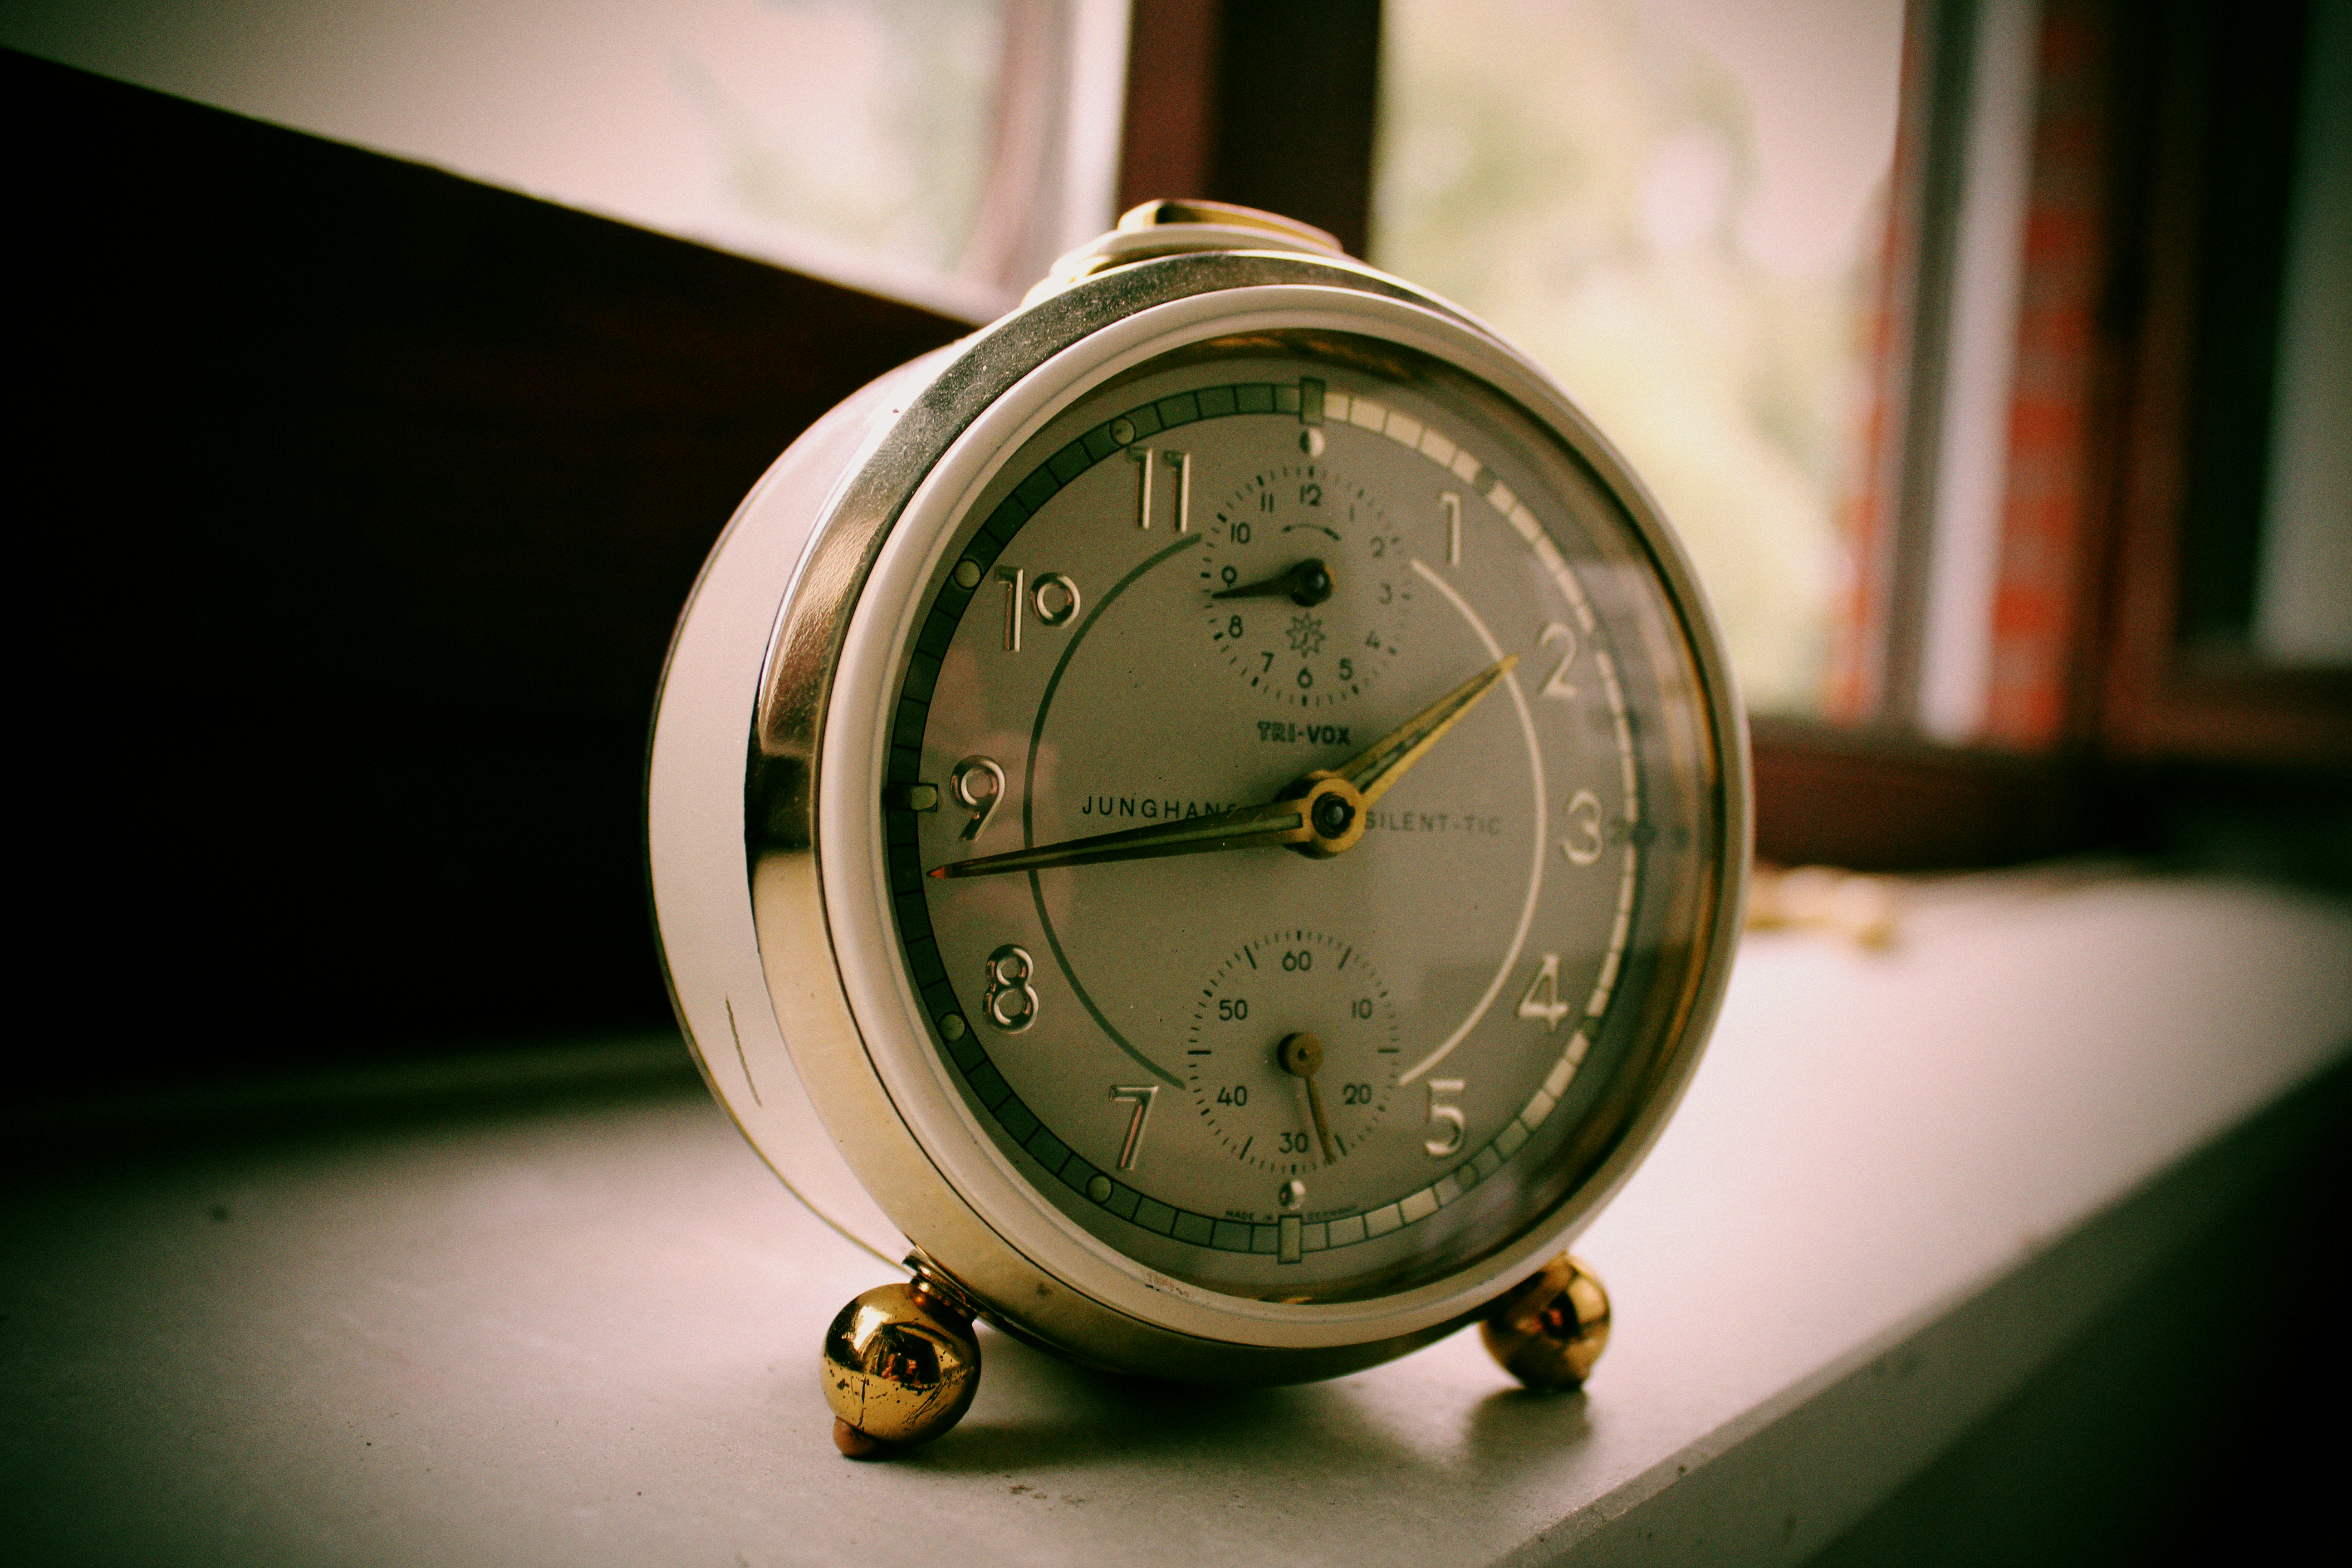 Vintage Alarm Clock By LotusOnlineDe